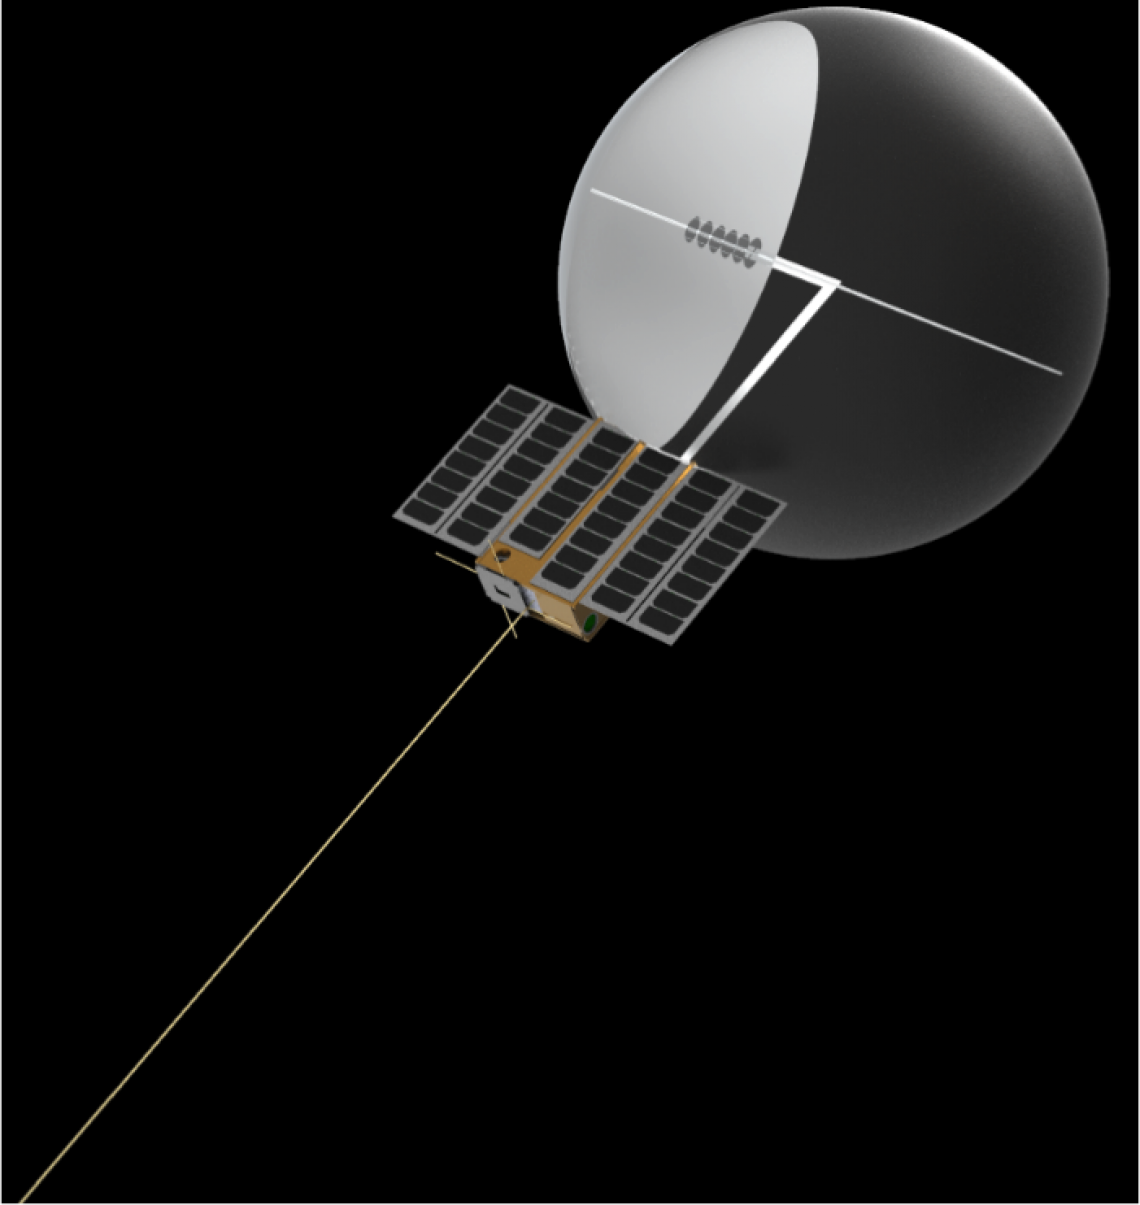 A rendering of CatSat, a nanosatellite being built by UA students.